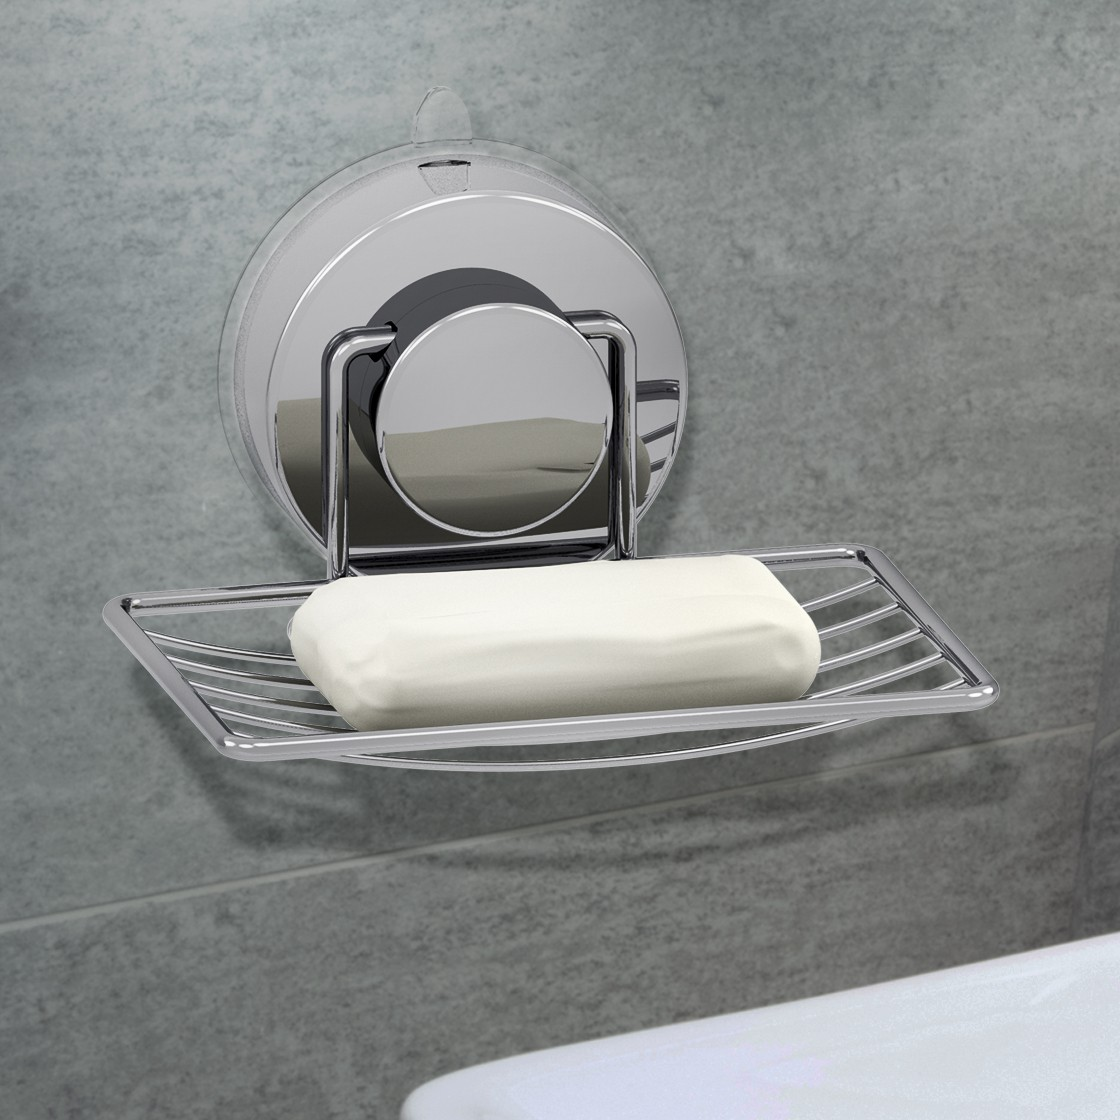 soap dish for shower weguard suction cup soap holder shower stainless steel shower soap dish rust proof for bathroom tub kitchen sink walmart com